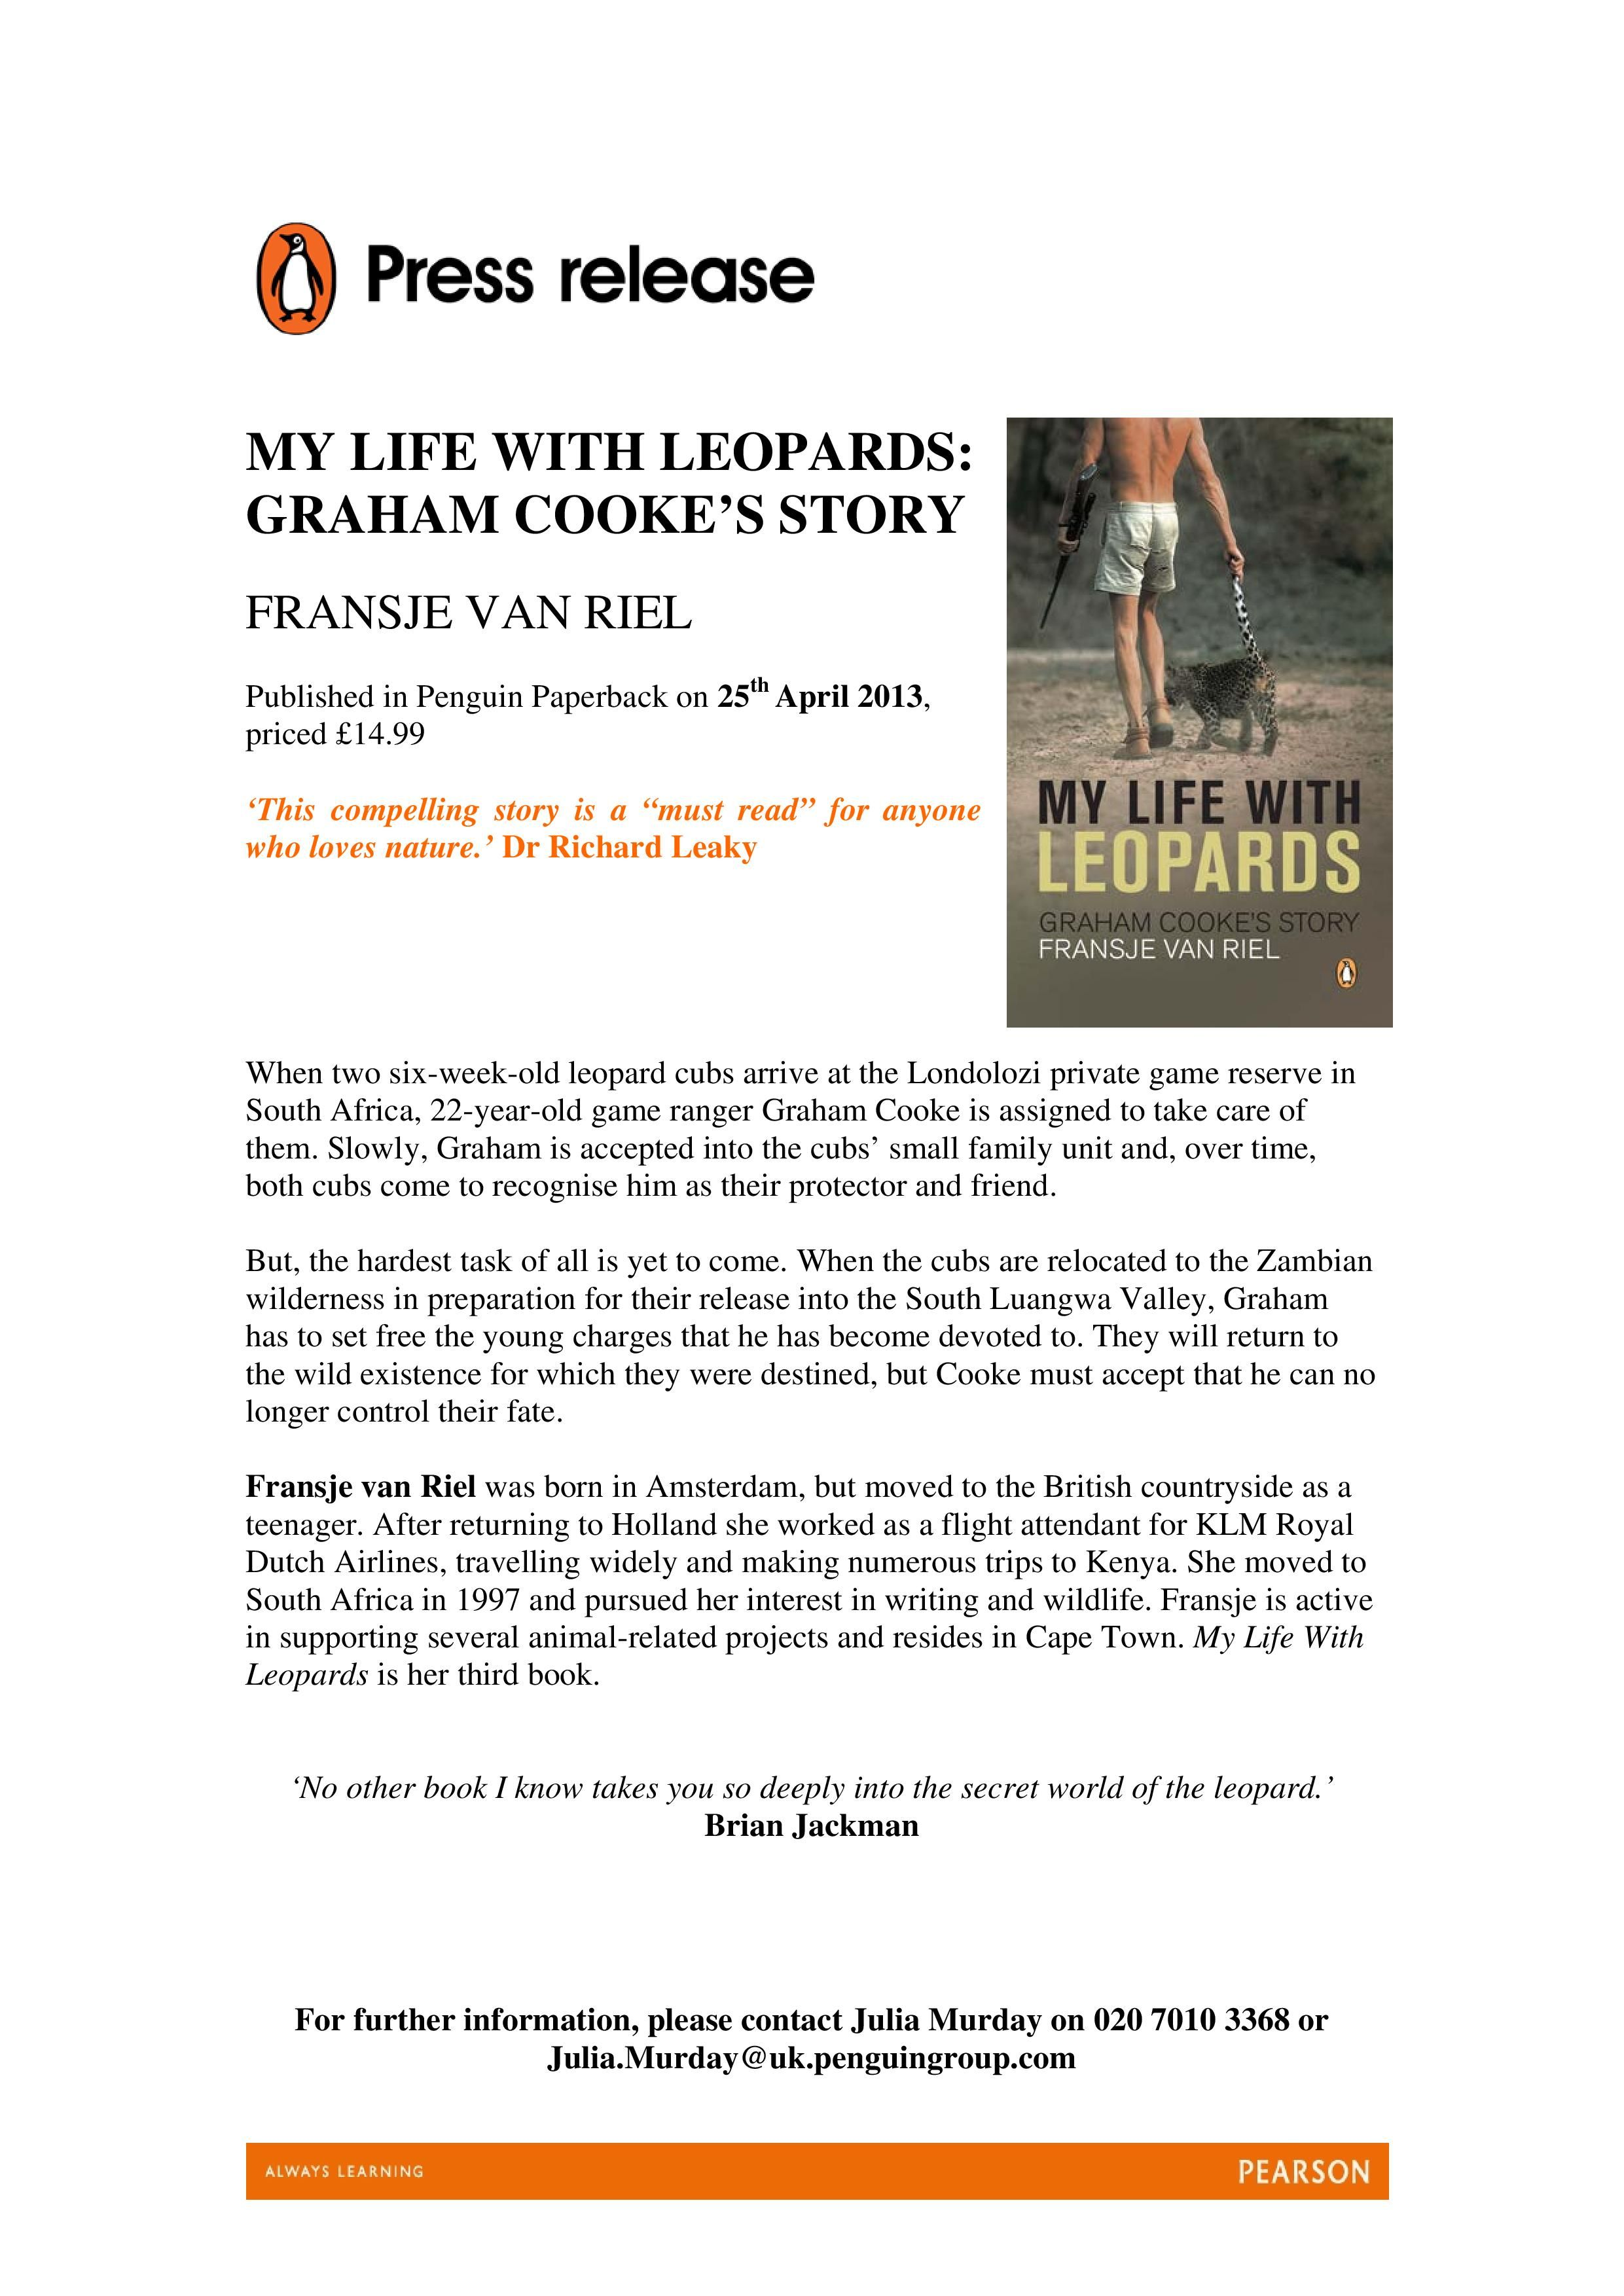 Example Press Release Courtesy Of Penguin Books Uk My Life With Leopards Available Online And In Stores Penguin Books Uk Press Release Example Press Release Writing a press release template